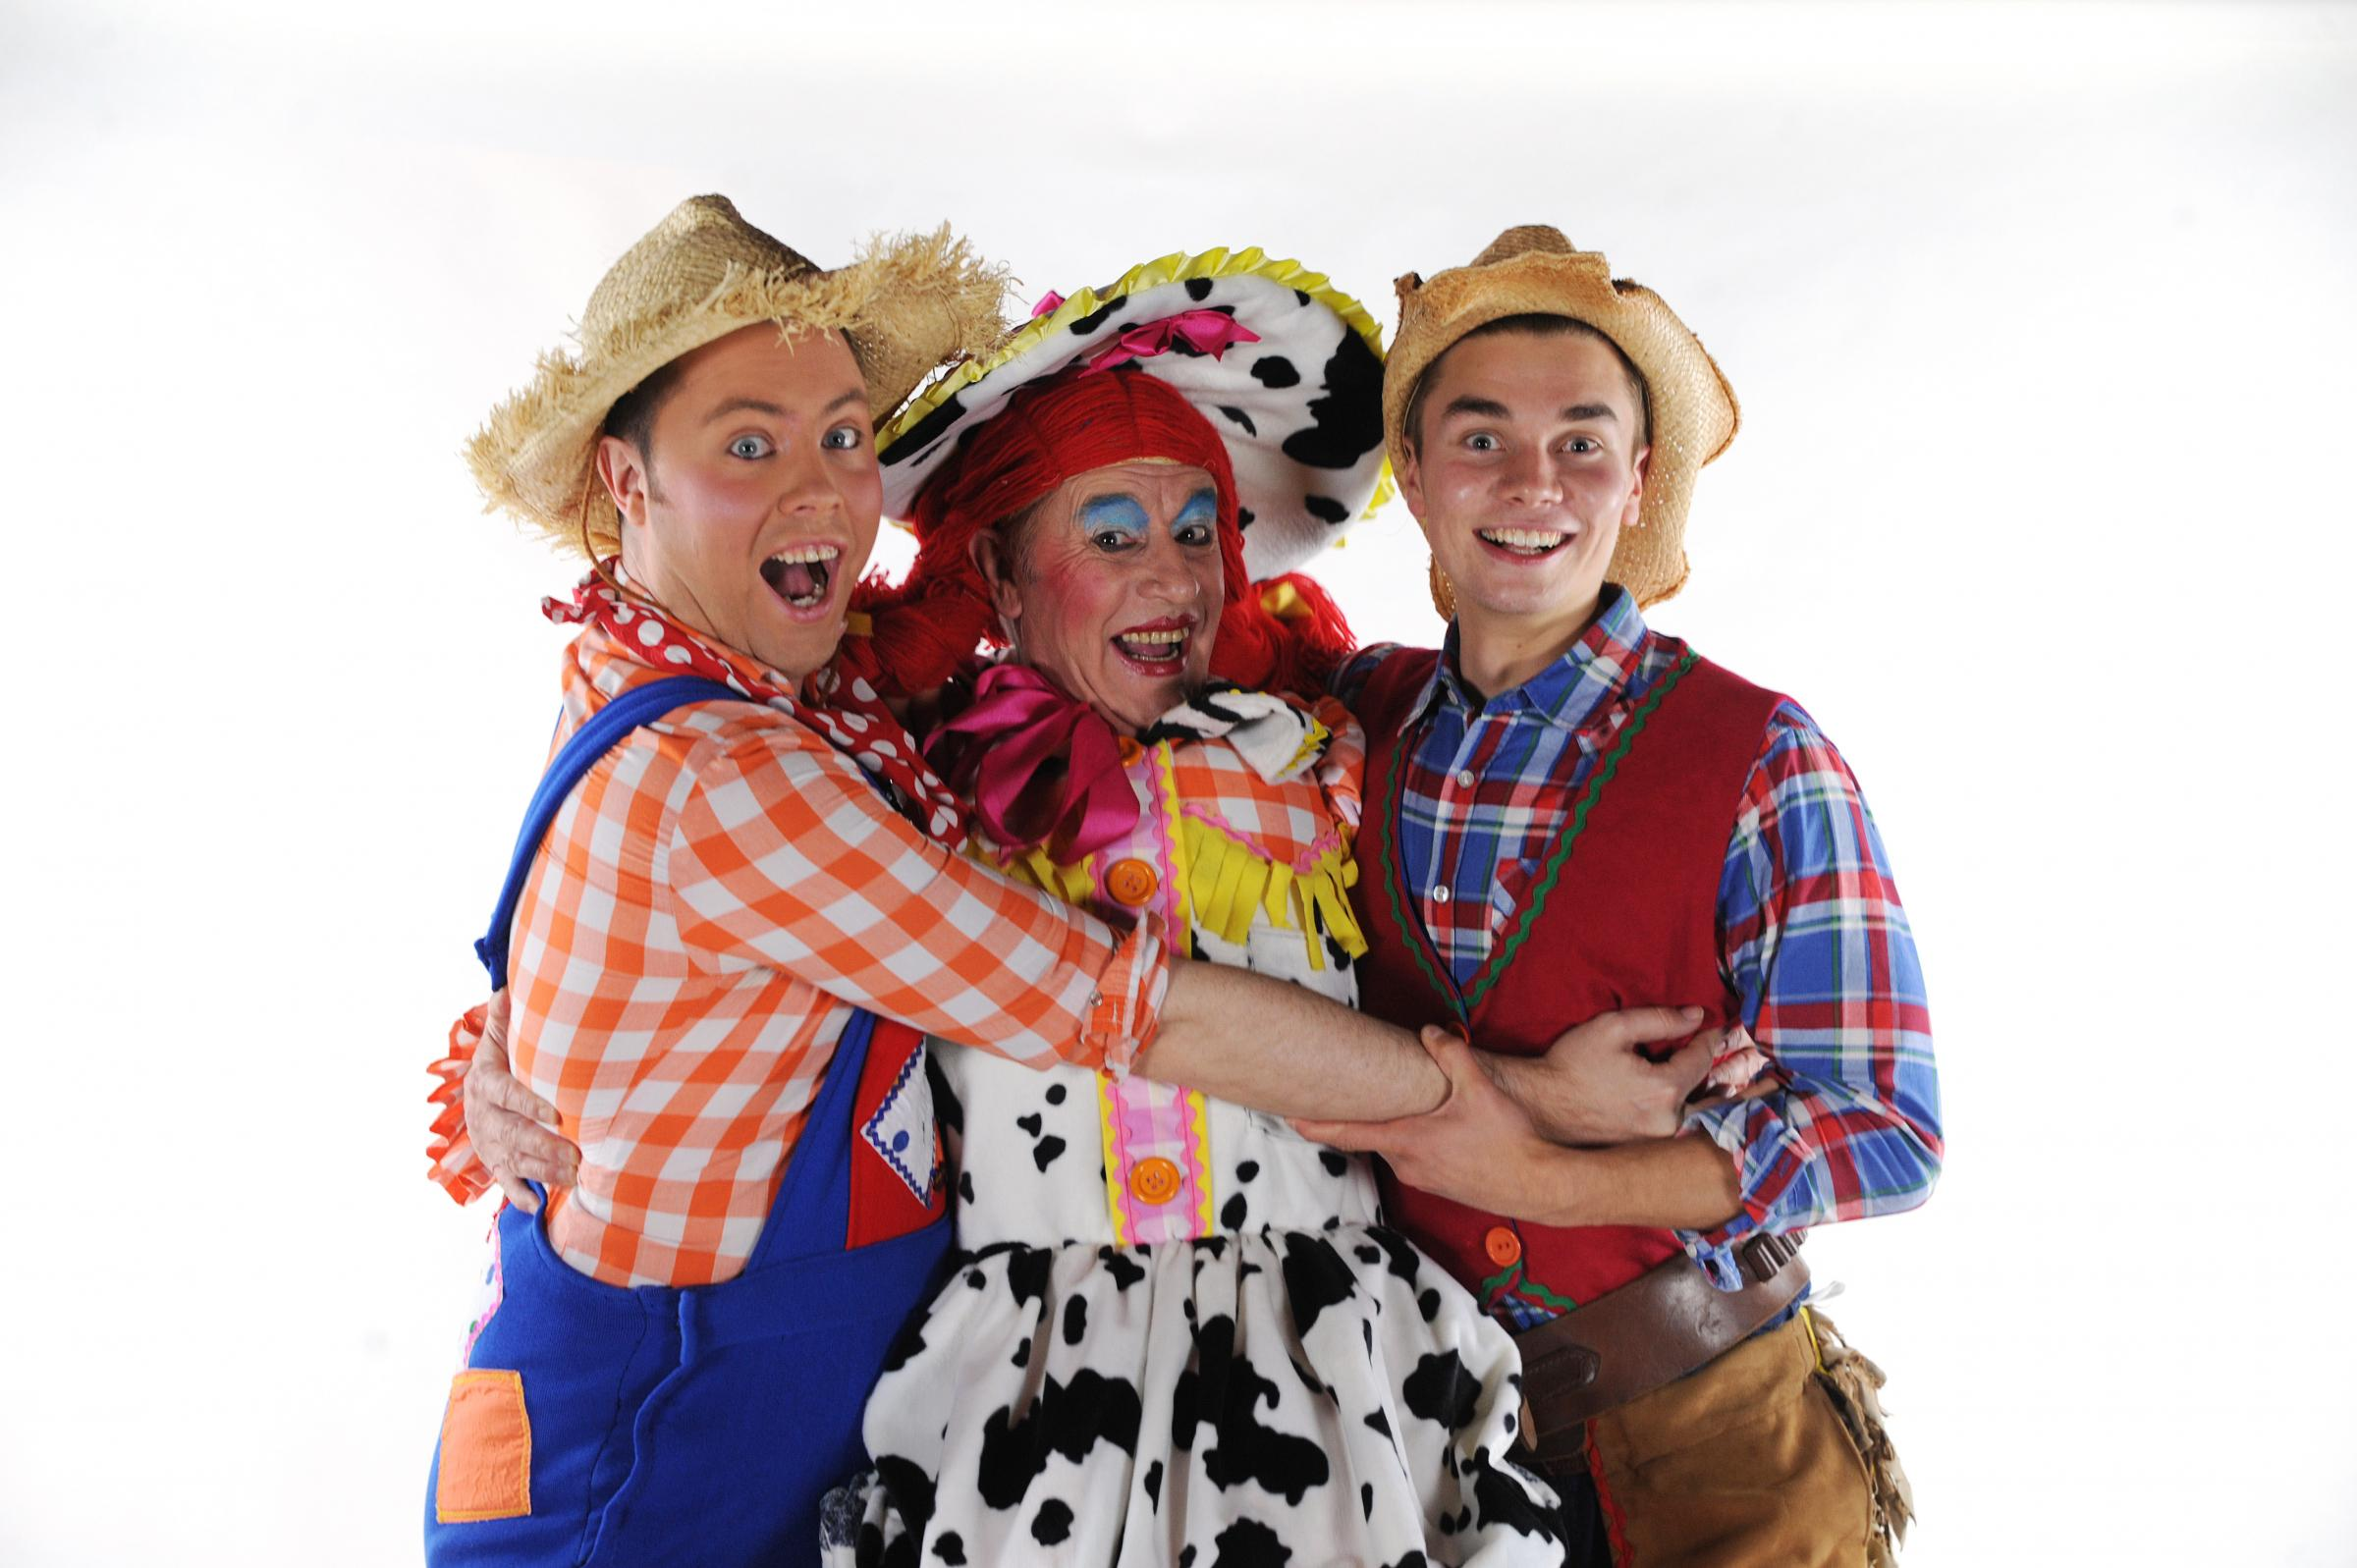 The Alhambra Theatre in Dunfermline will be hosting Jack and the Beanstalk from December 8-27. Picture by David Wardle